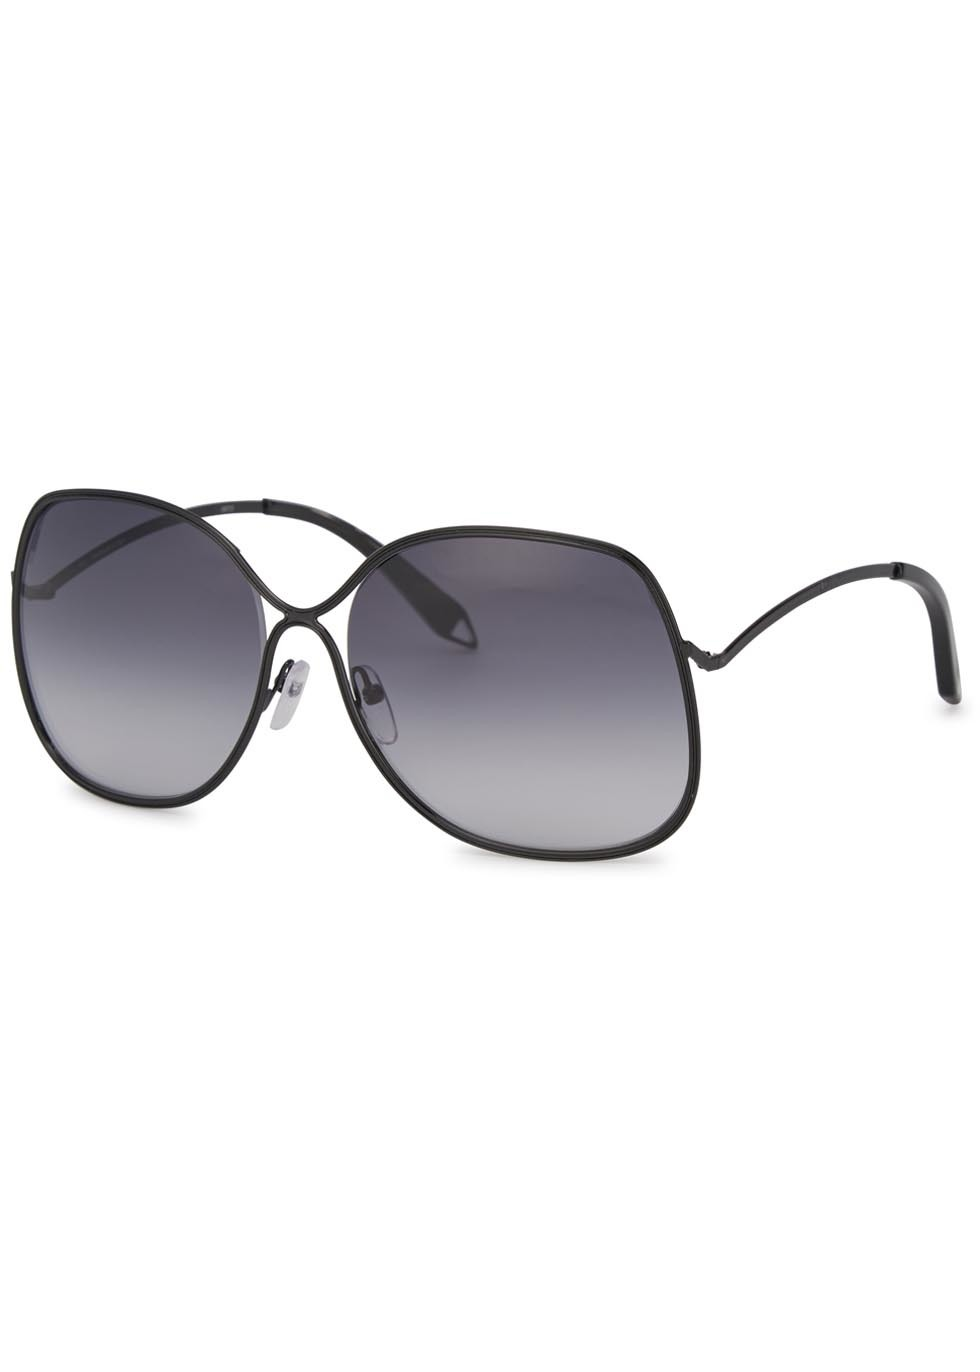 Enamel Wave Black Oversized Sunglasses - predominant colour: black; occasions: casual, holiday; style: square; size: large; material: plastic/rubber; pattern: plain; finish: plain; season: a/w 2015; wardrobe: basic